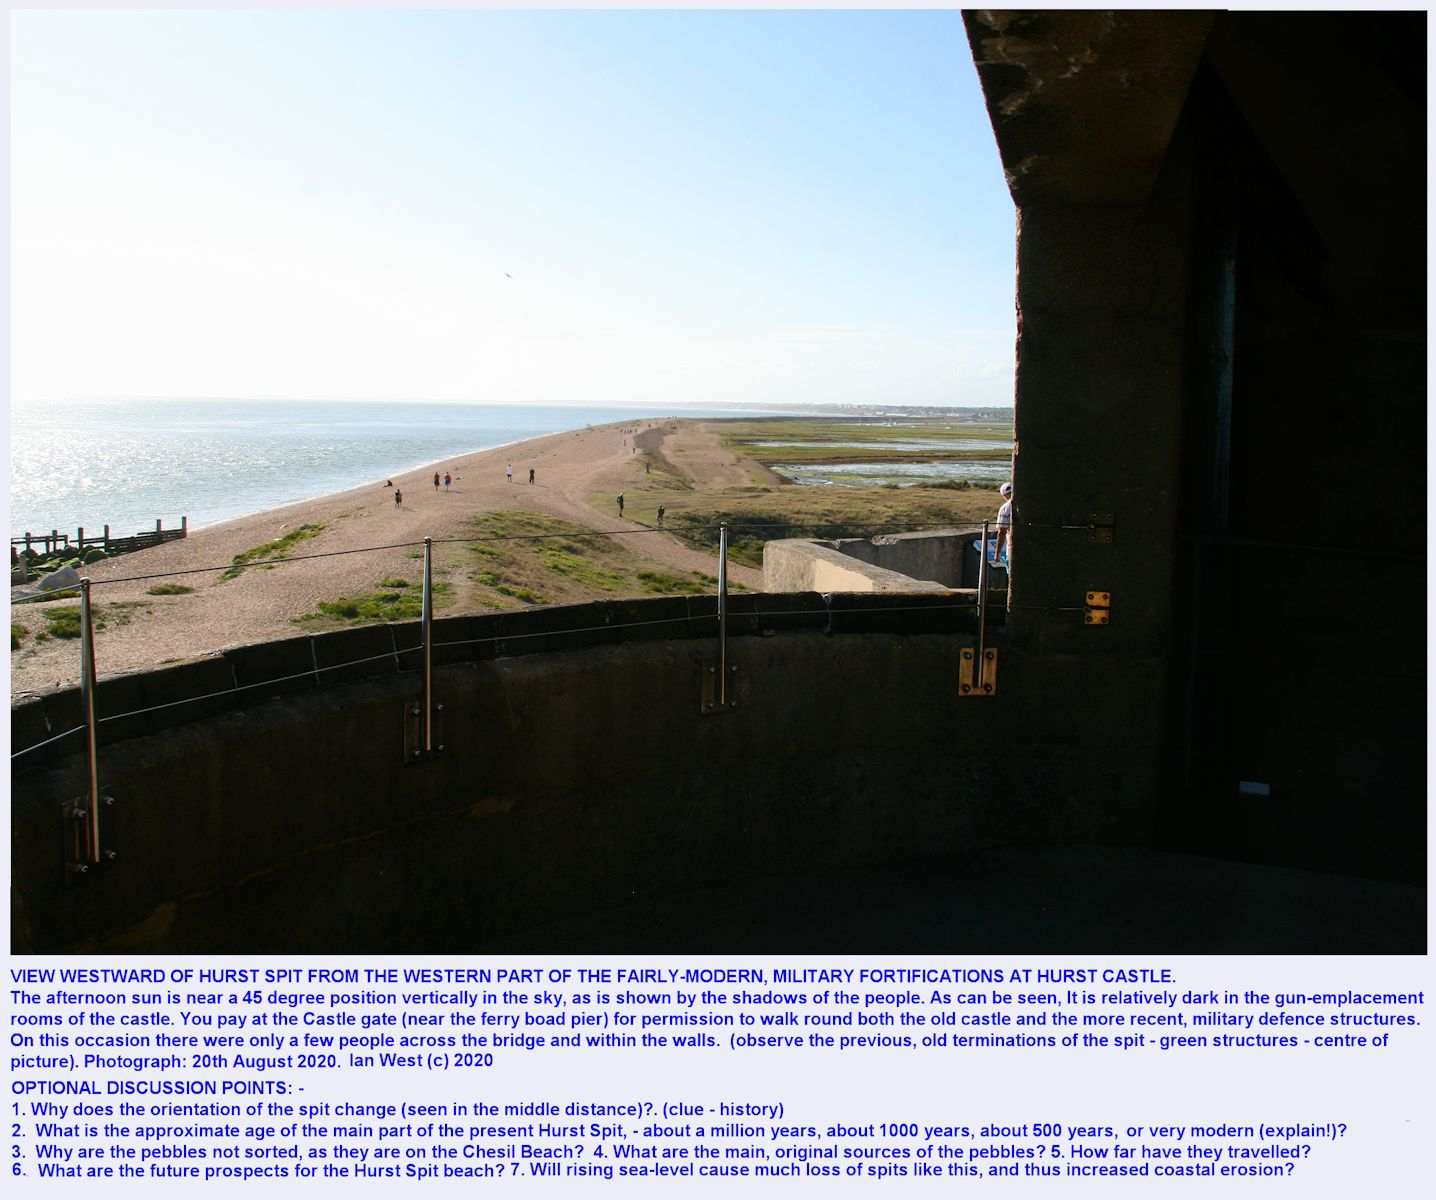 A view from the western end of the fortifications at the end of Hurst Spit, Hampshire, with a partial view of the shingle spit, 20th August 2020